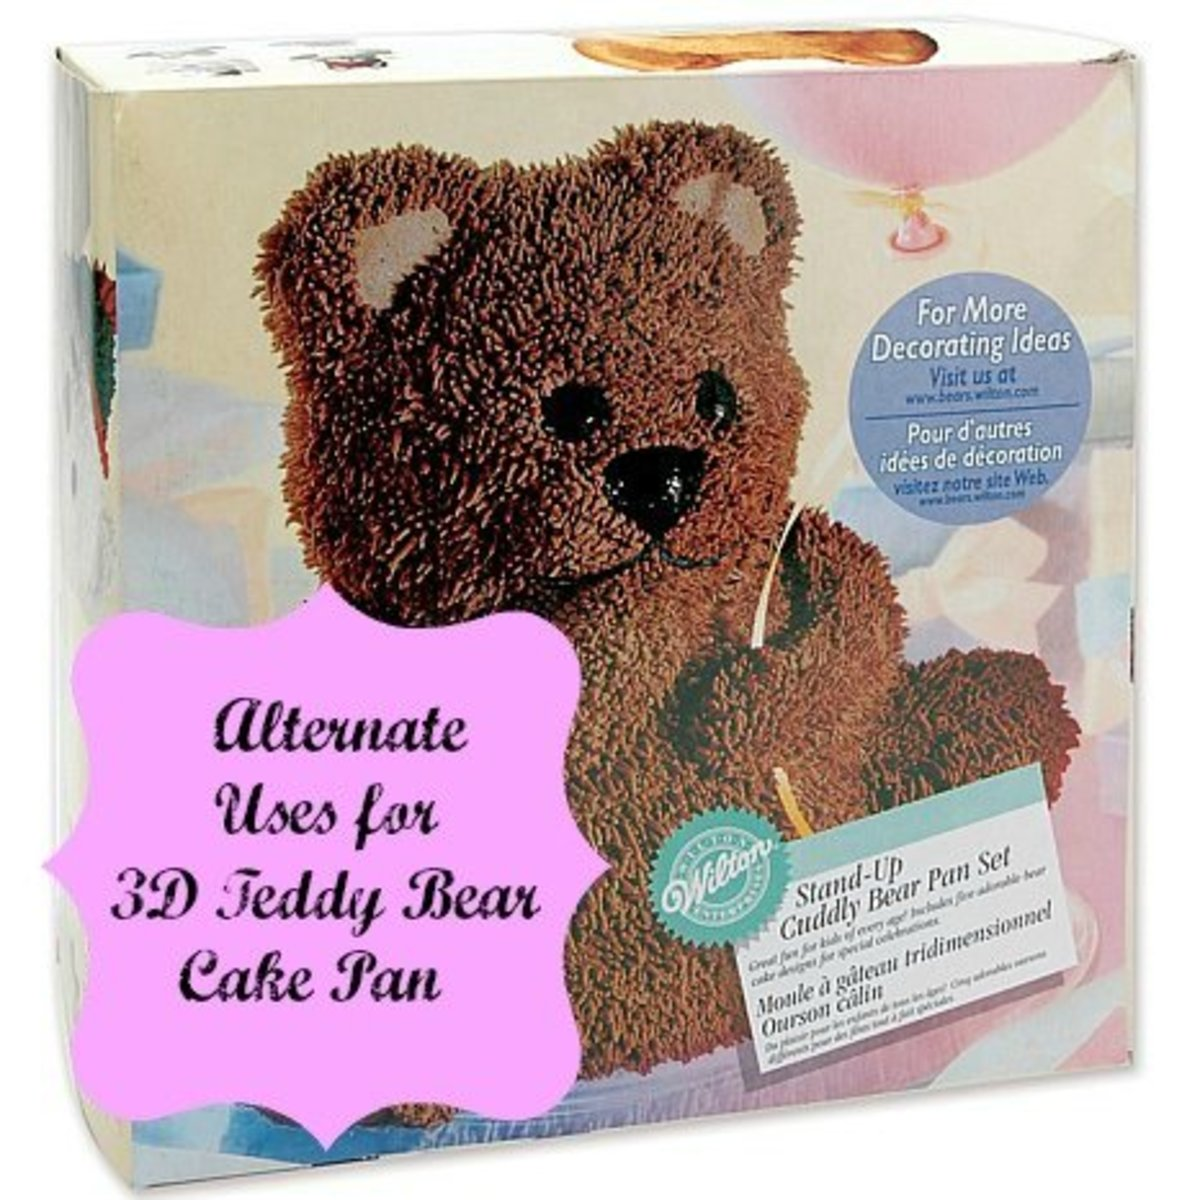 Alternate Uses For 3D Cuddly Bear Cake Pan